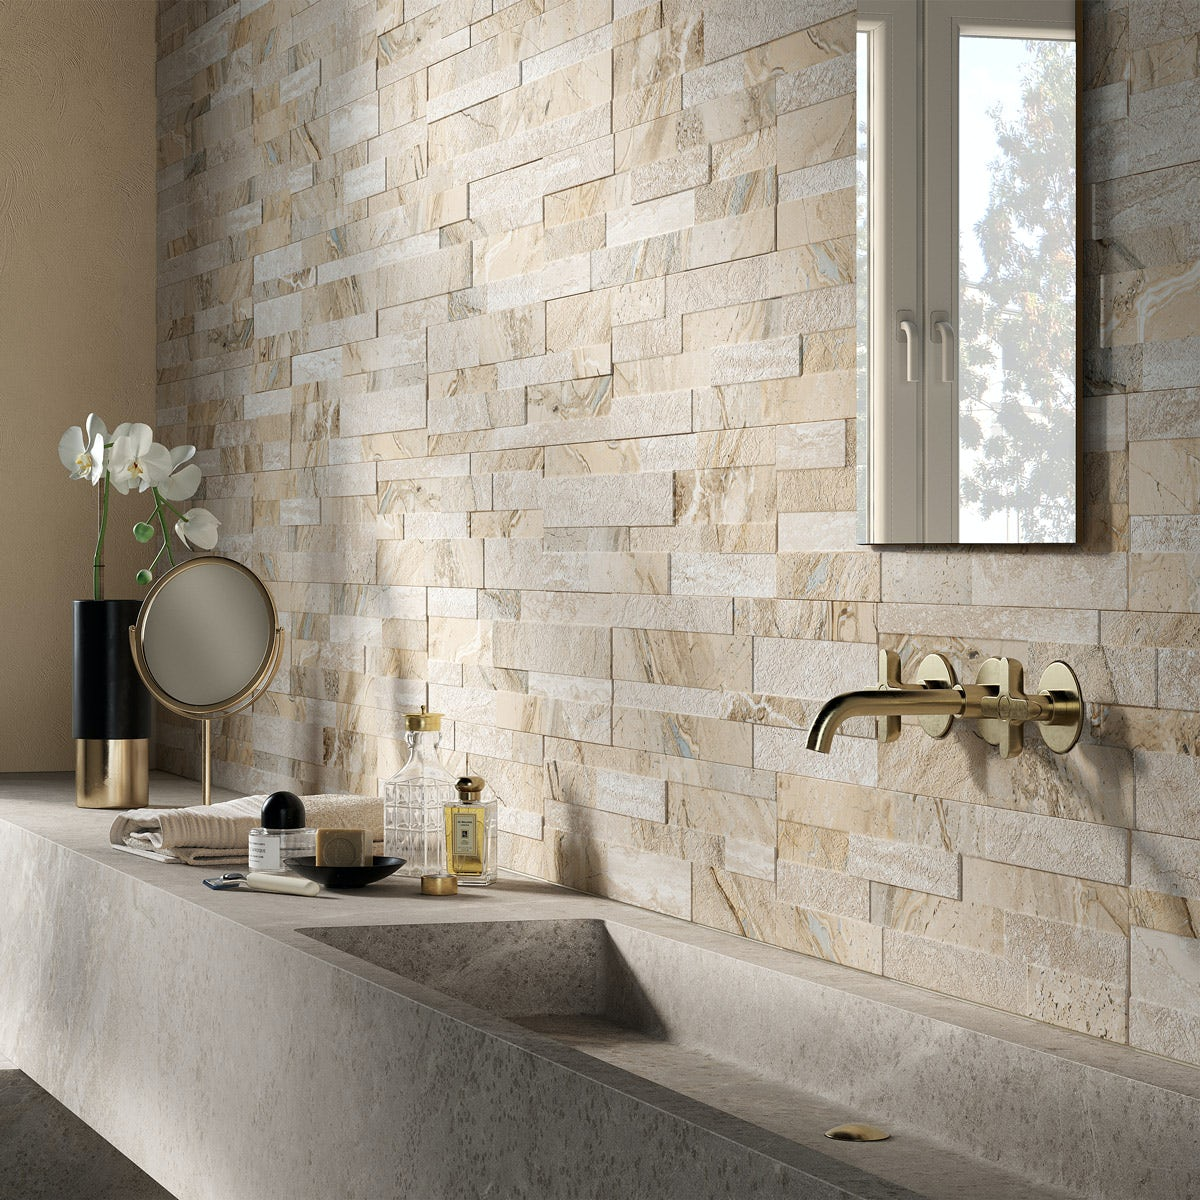 Bolsena Beige Split Face Stone Effect Matt Wall Tile 150mm